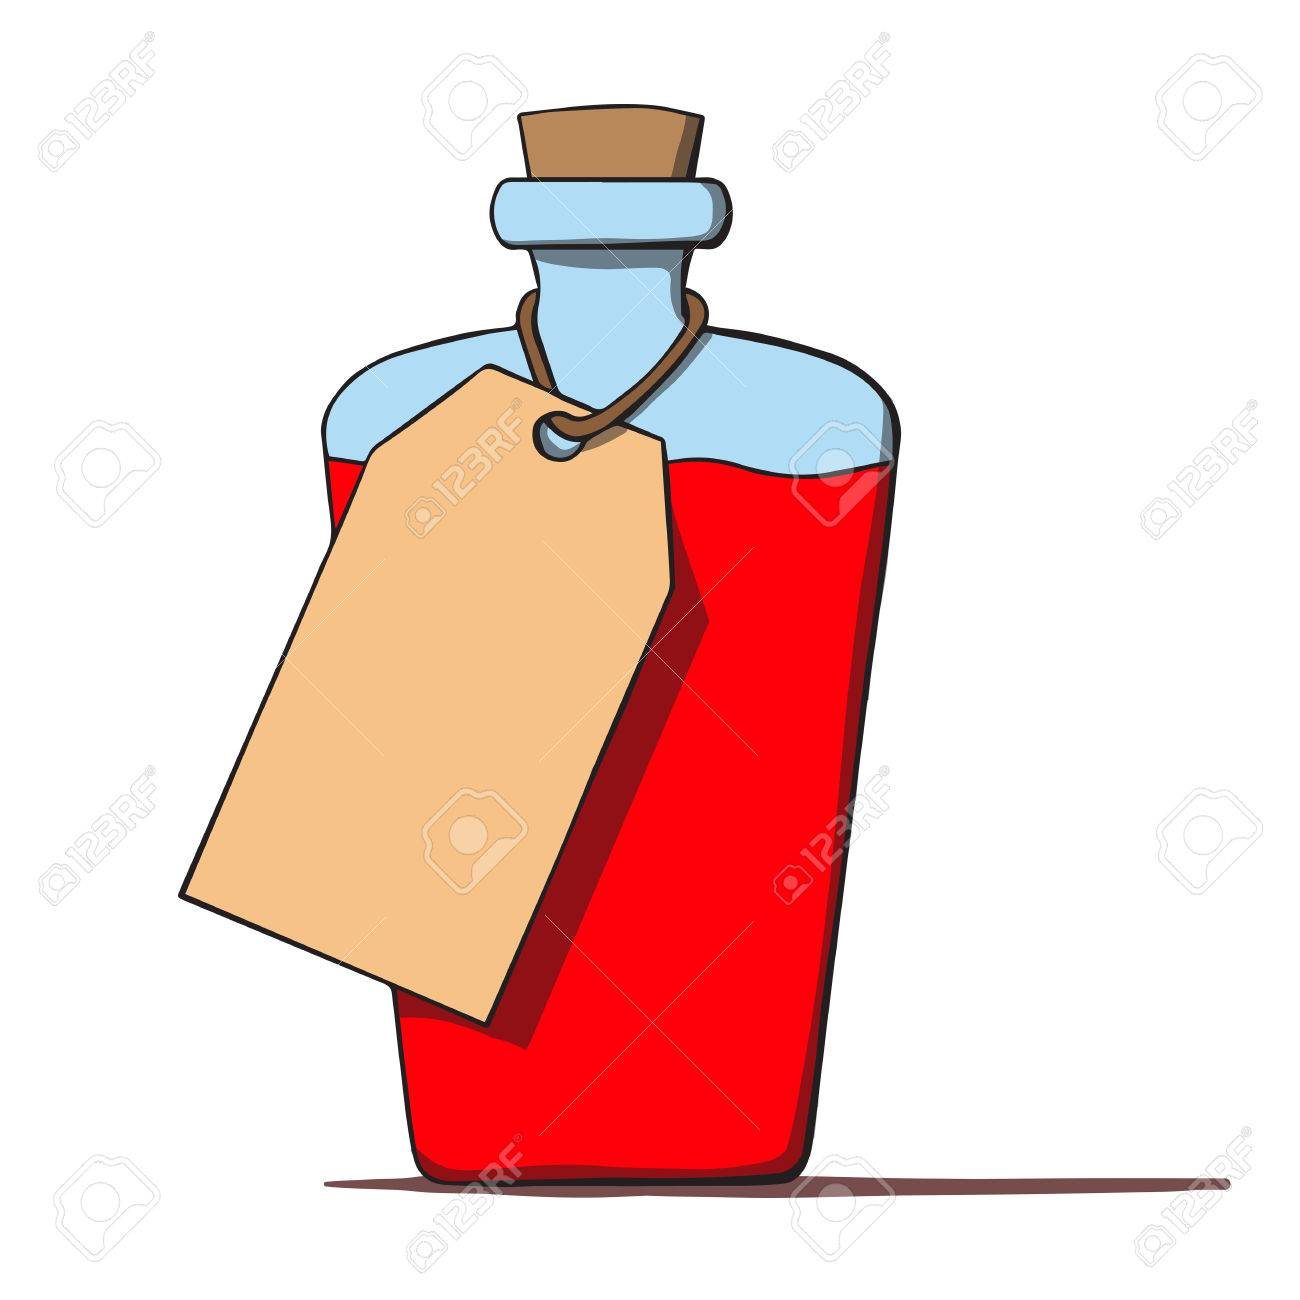 Cartoon bottle with a tag  Vector illustration Stock Vector - 25259462